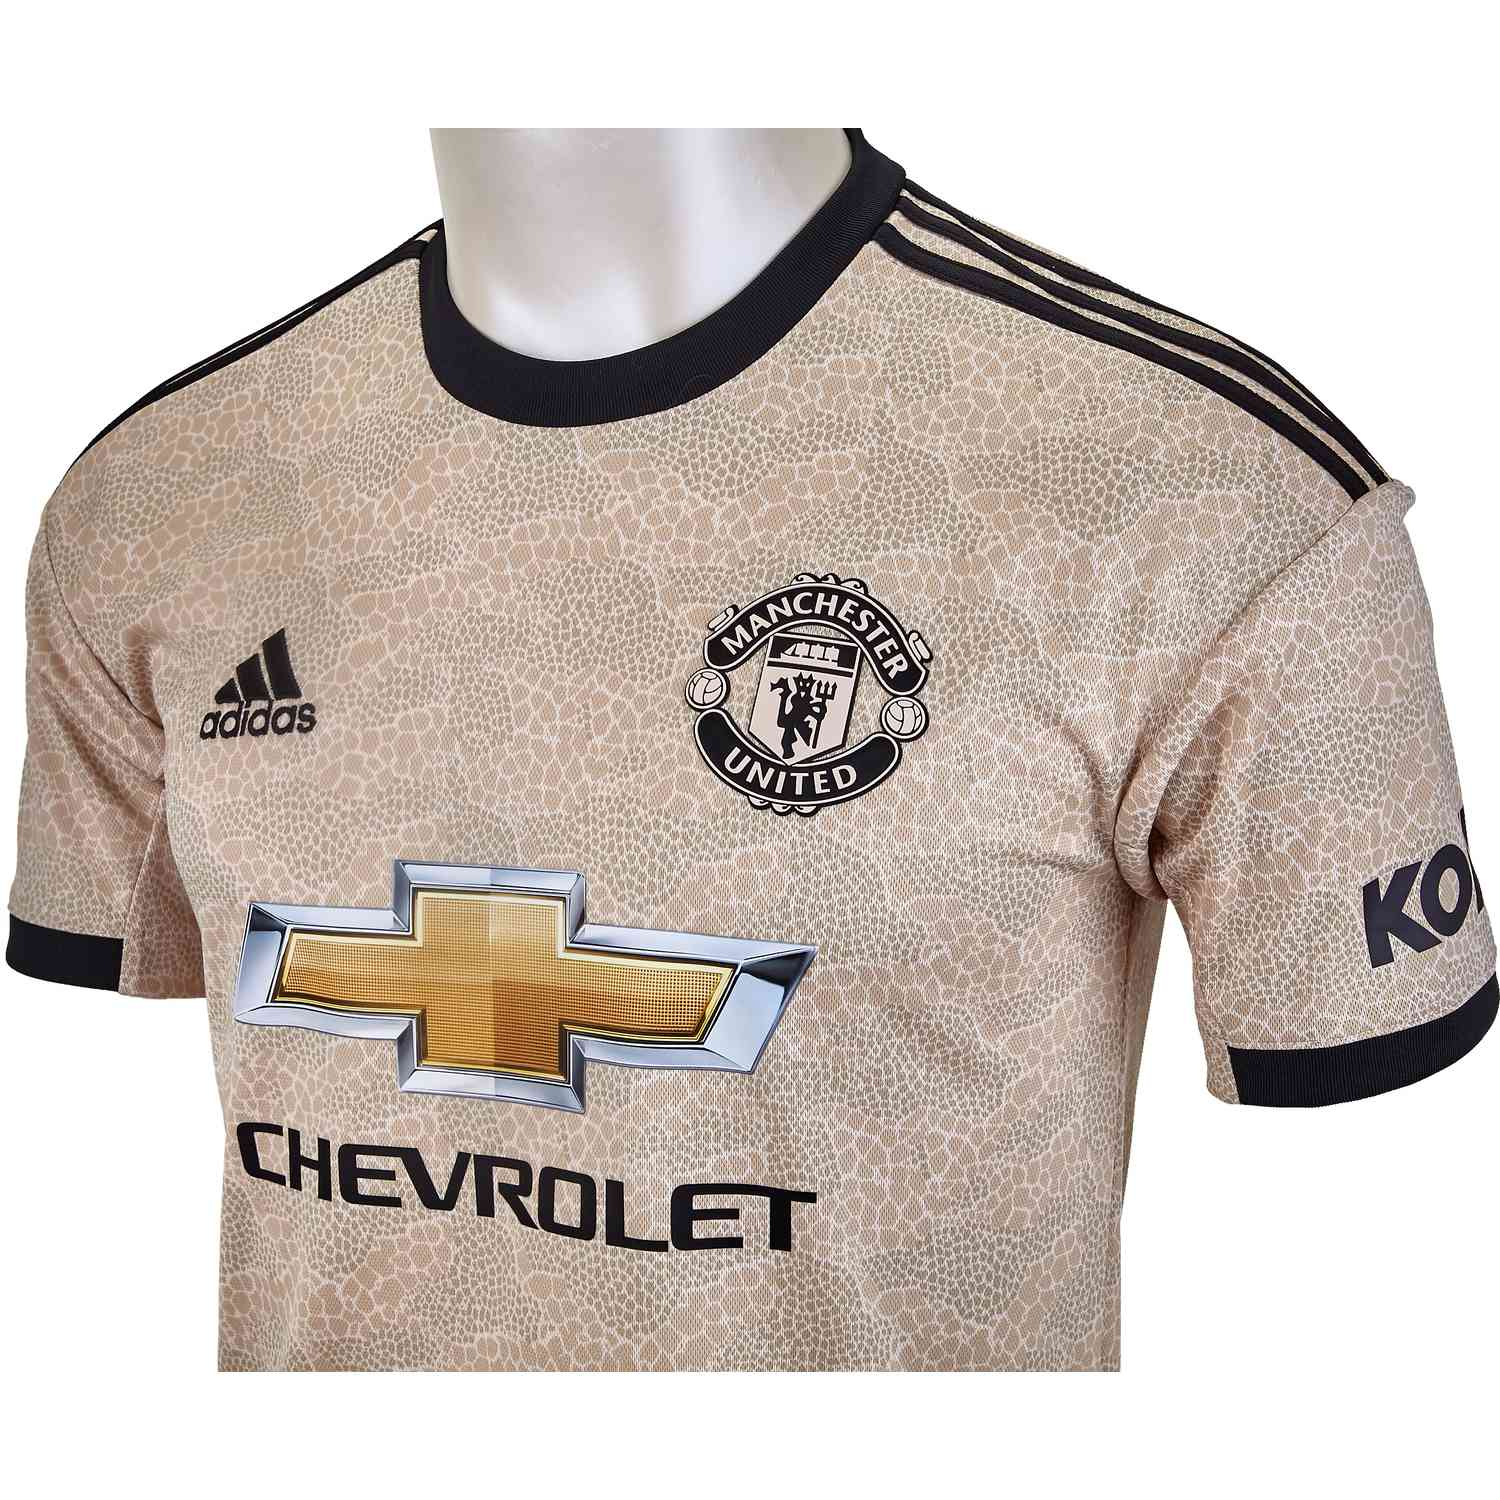 2019 20 adidas manchester united away jersey soccer master 2019 20 adidas manchester united away jersey soccer master